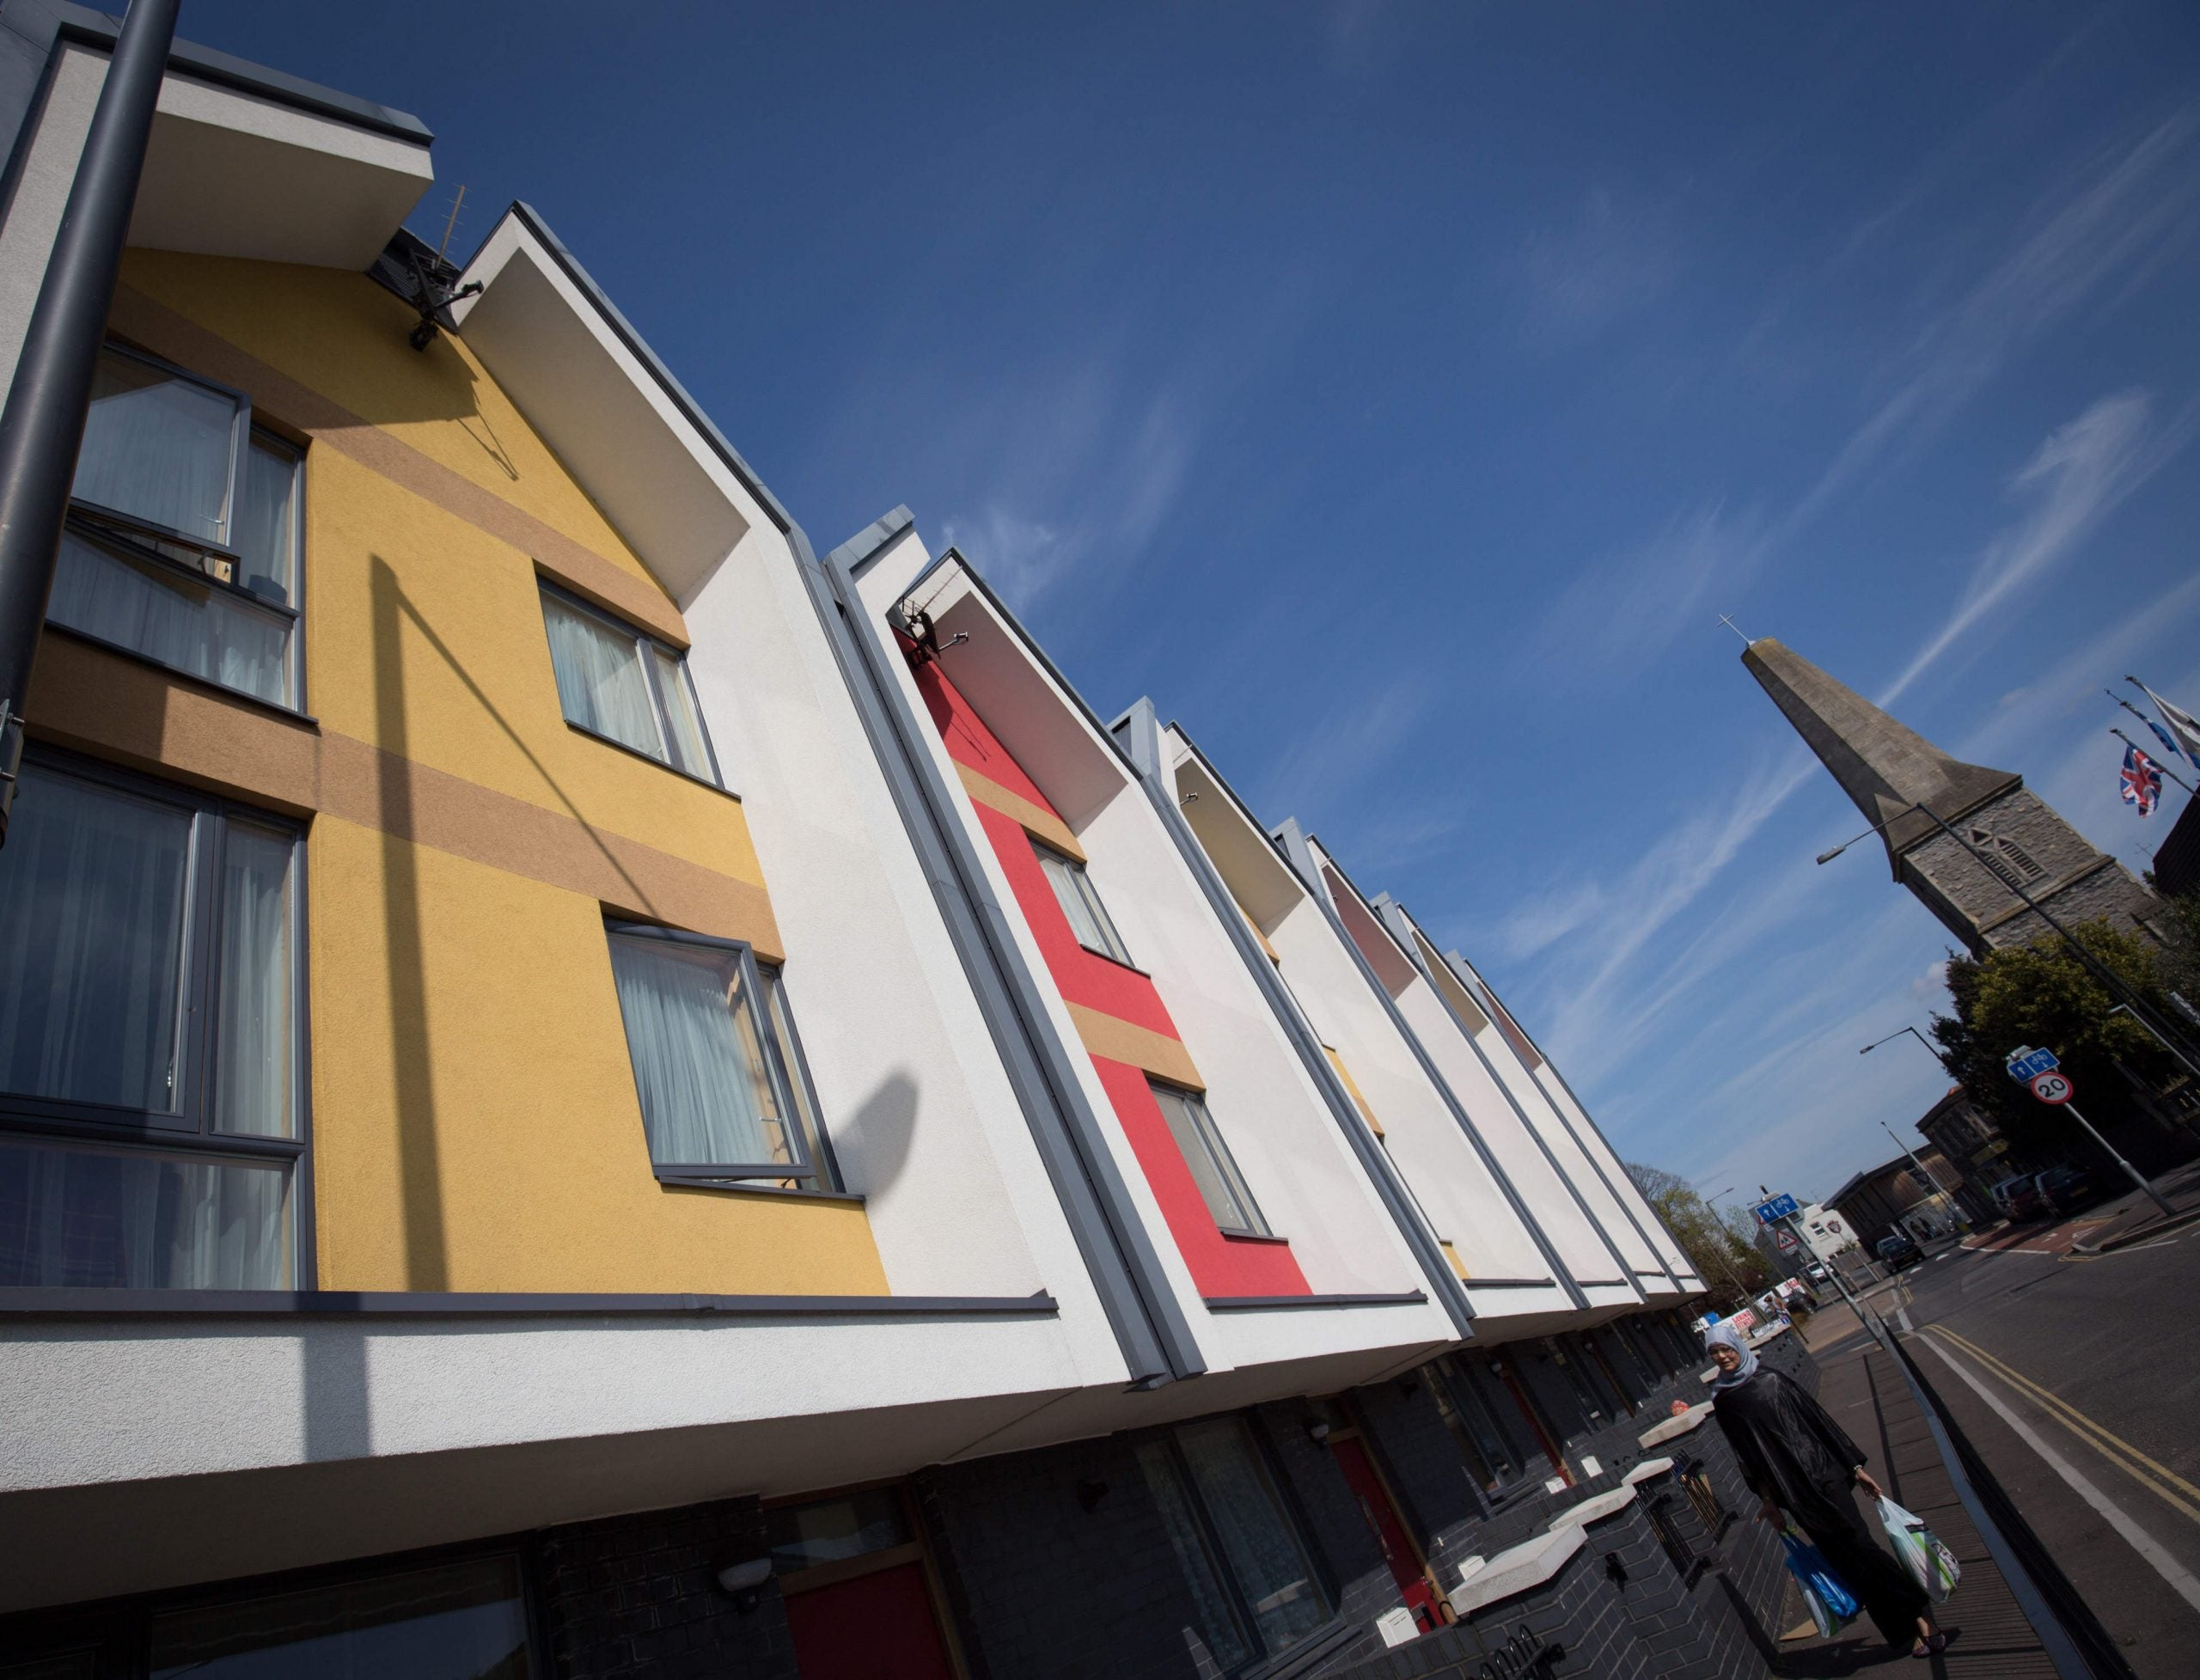 Housing associations are under pressure - but we're doing our best